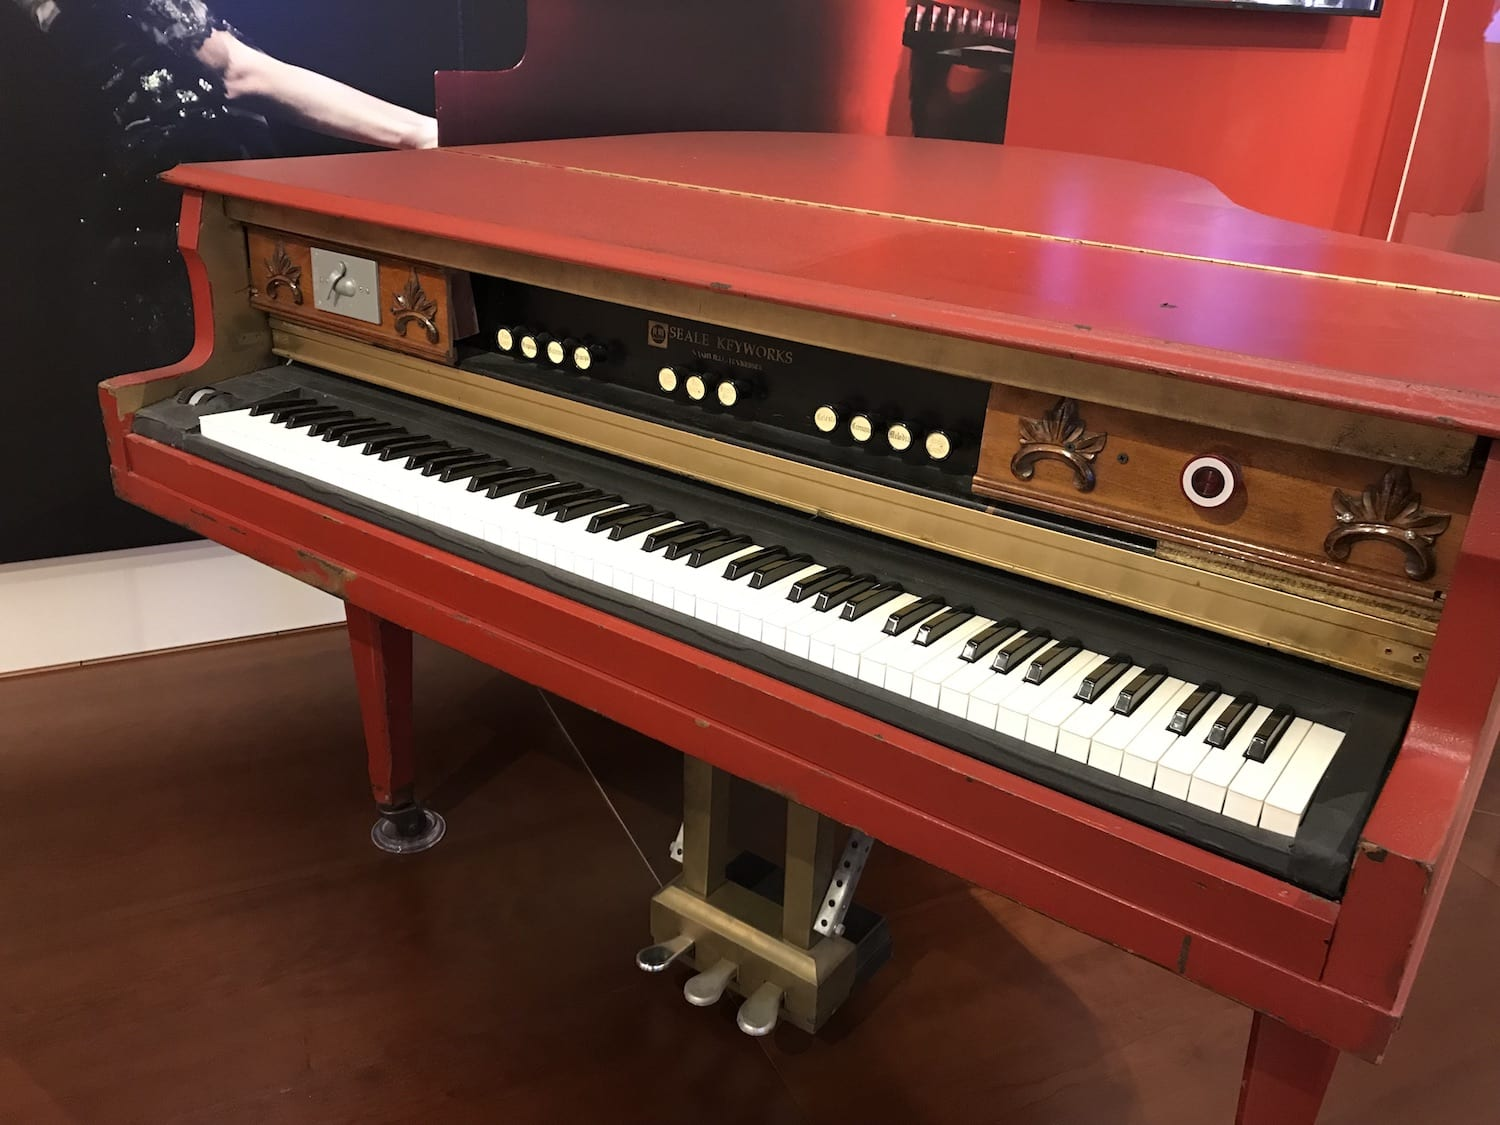 Taylor Swift Piano Artist Exhibit